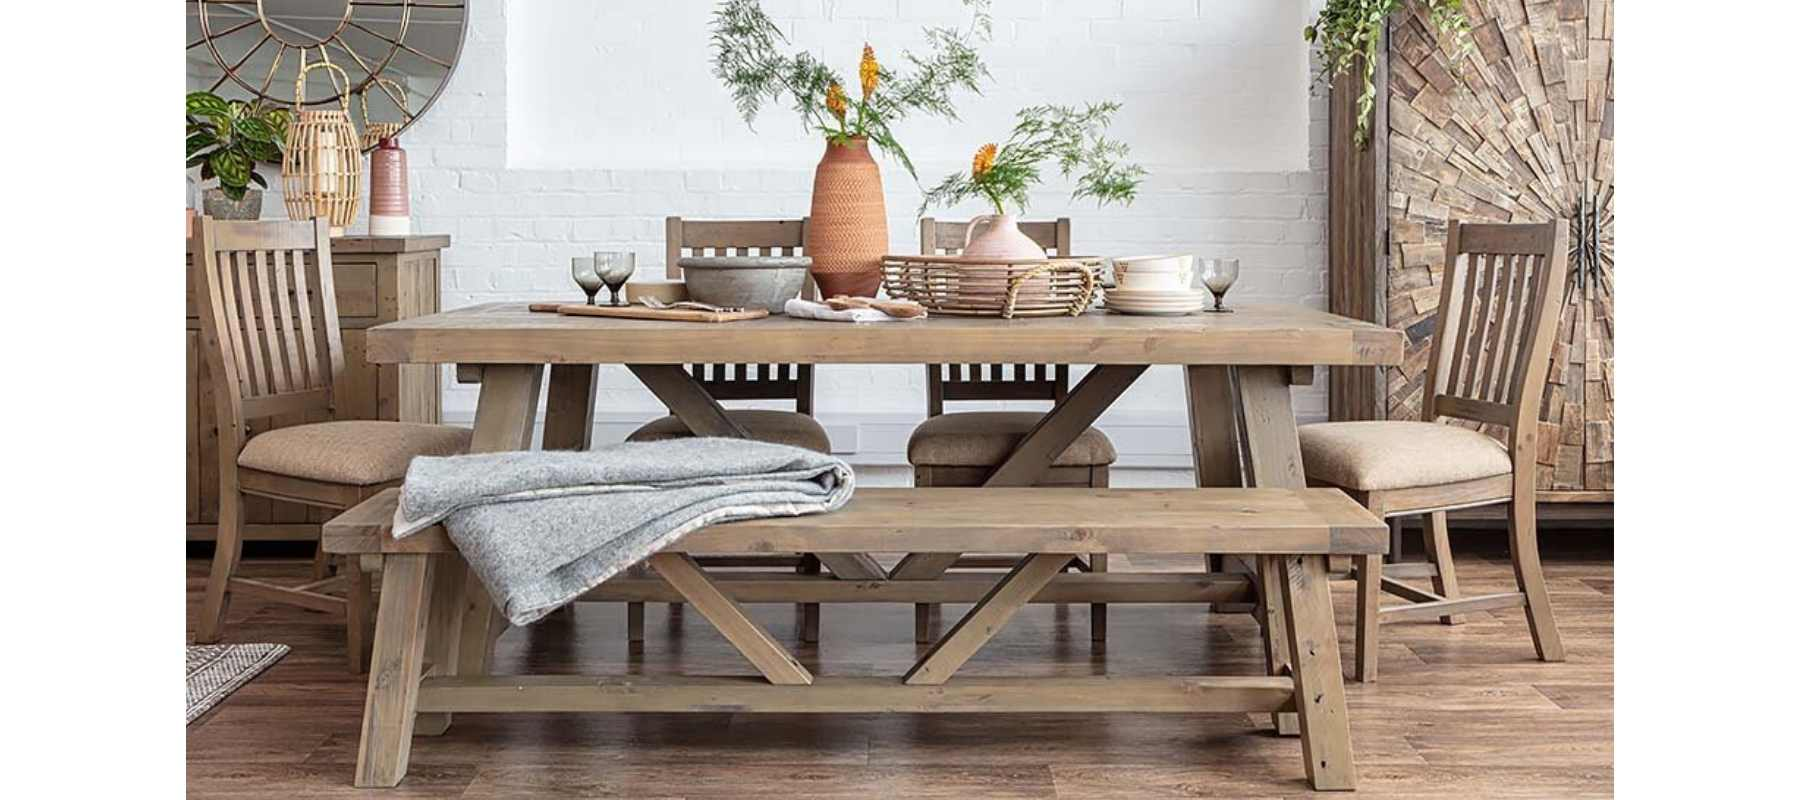 Wooden trestle table with wooden bench and terracotta vase